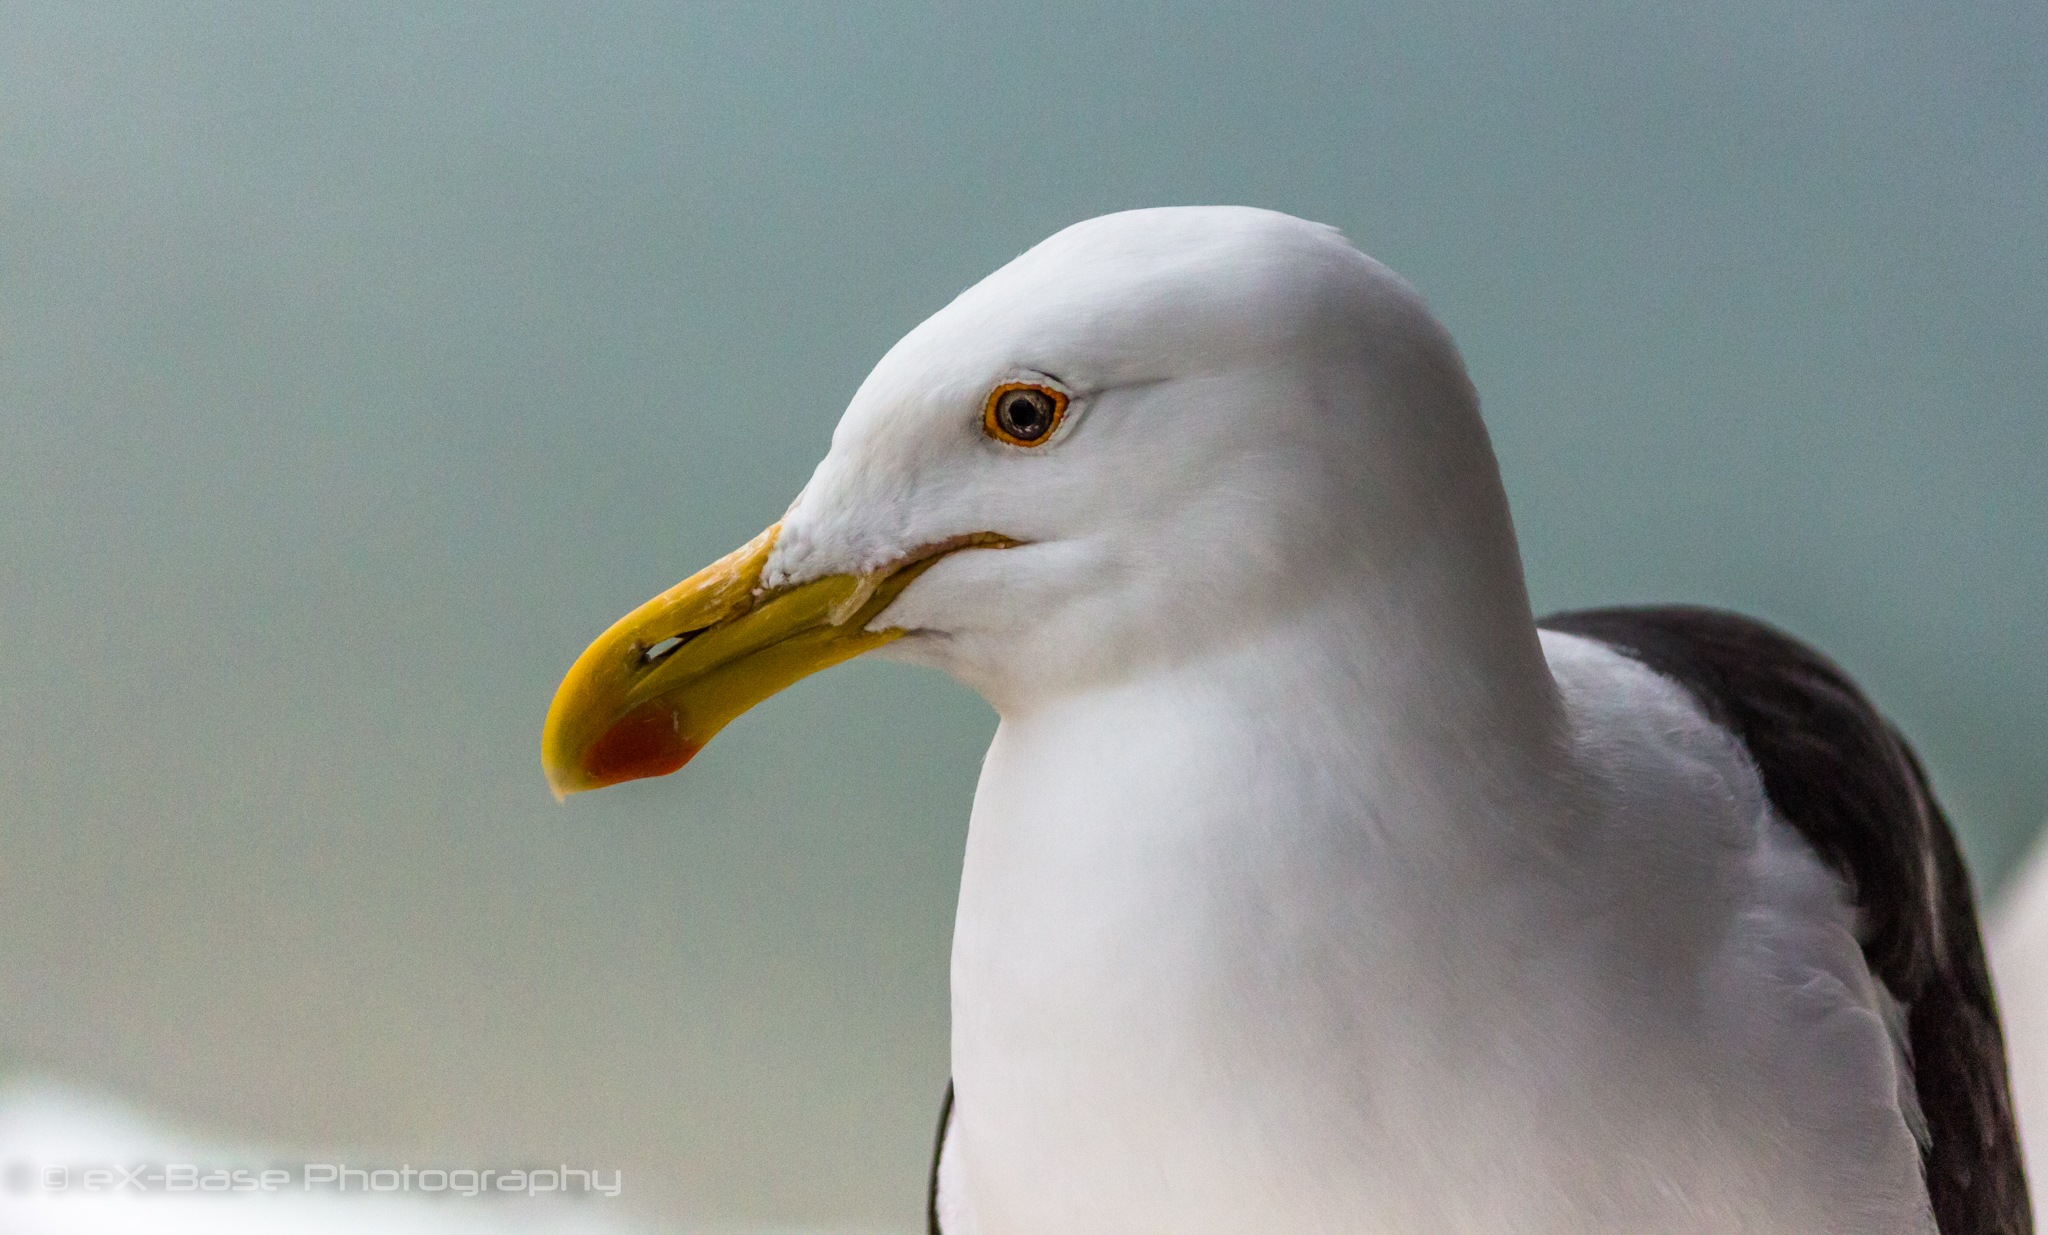 Seagull by Xander Buys